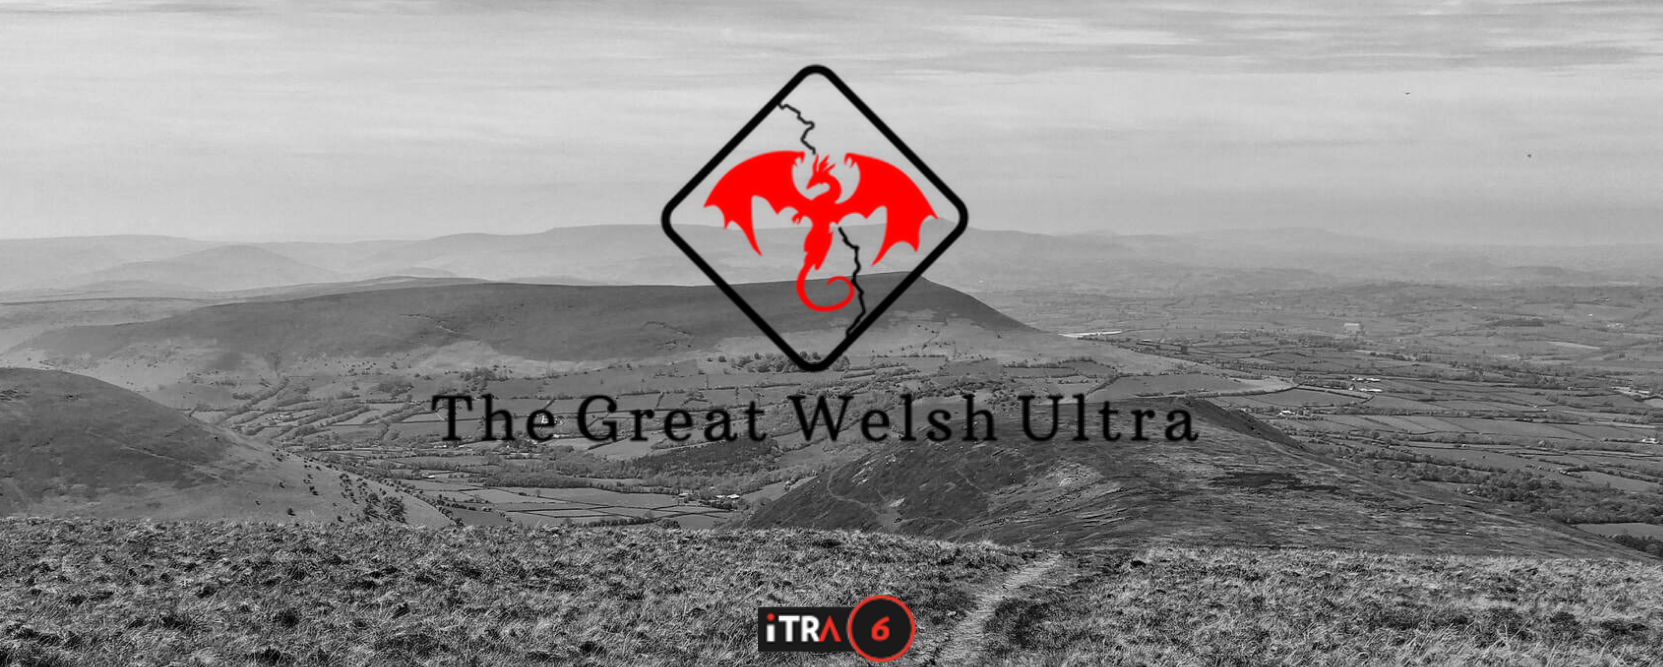 The Great Welsh Ultra